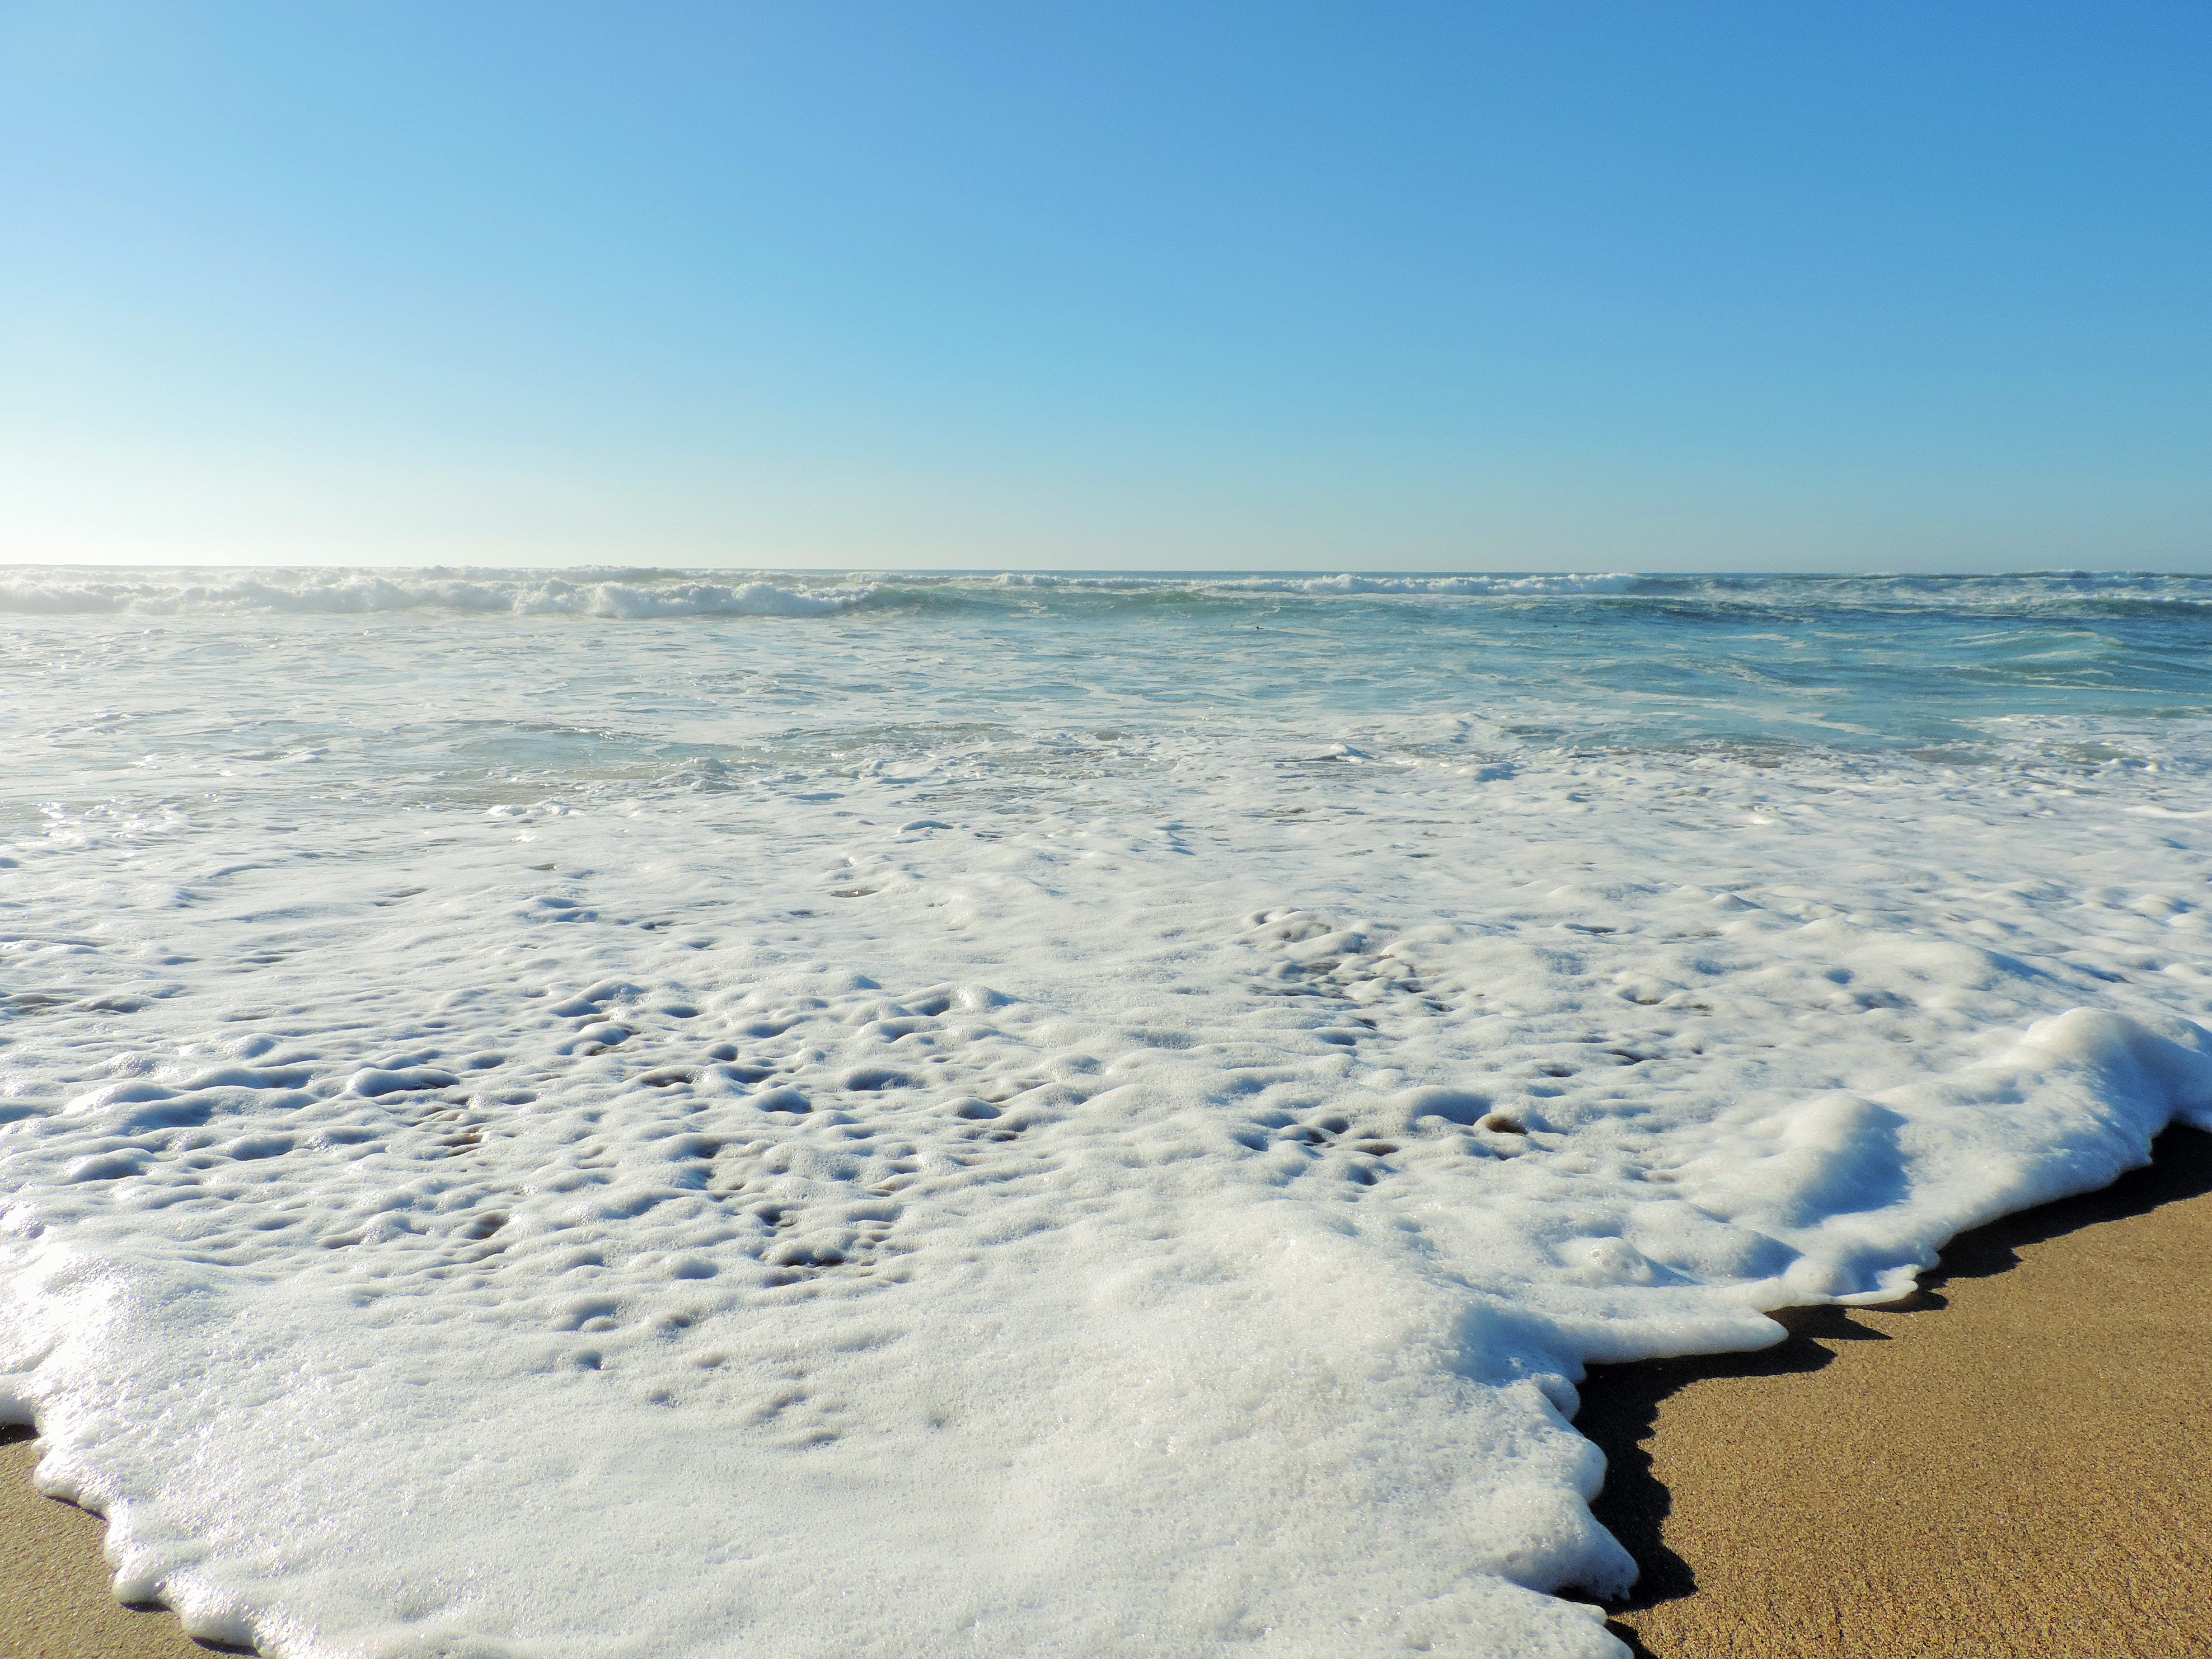 Day at the beach. I love the details of the waves.